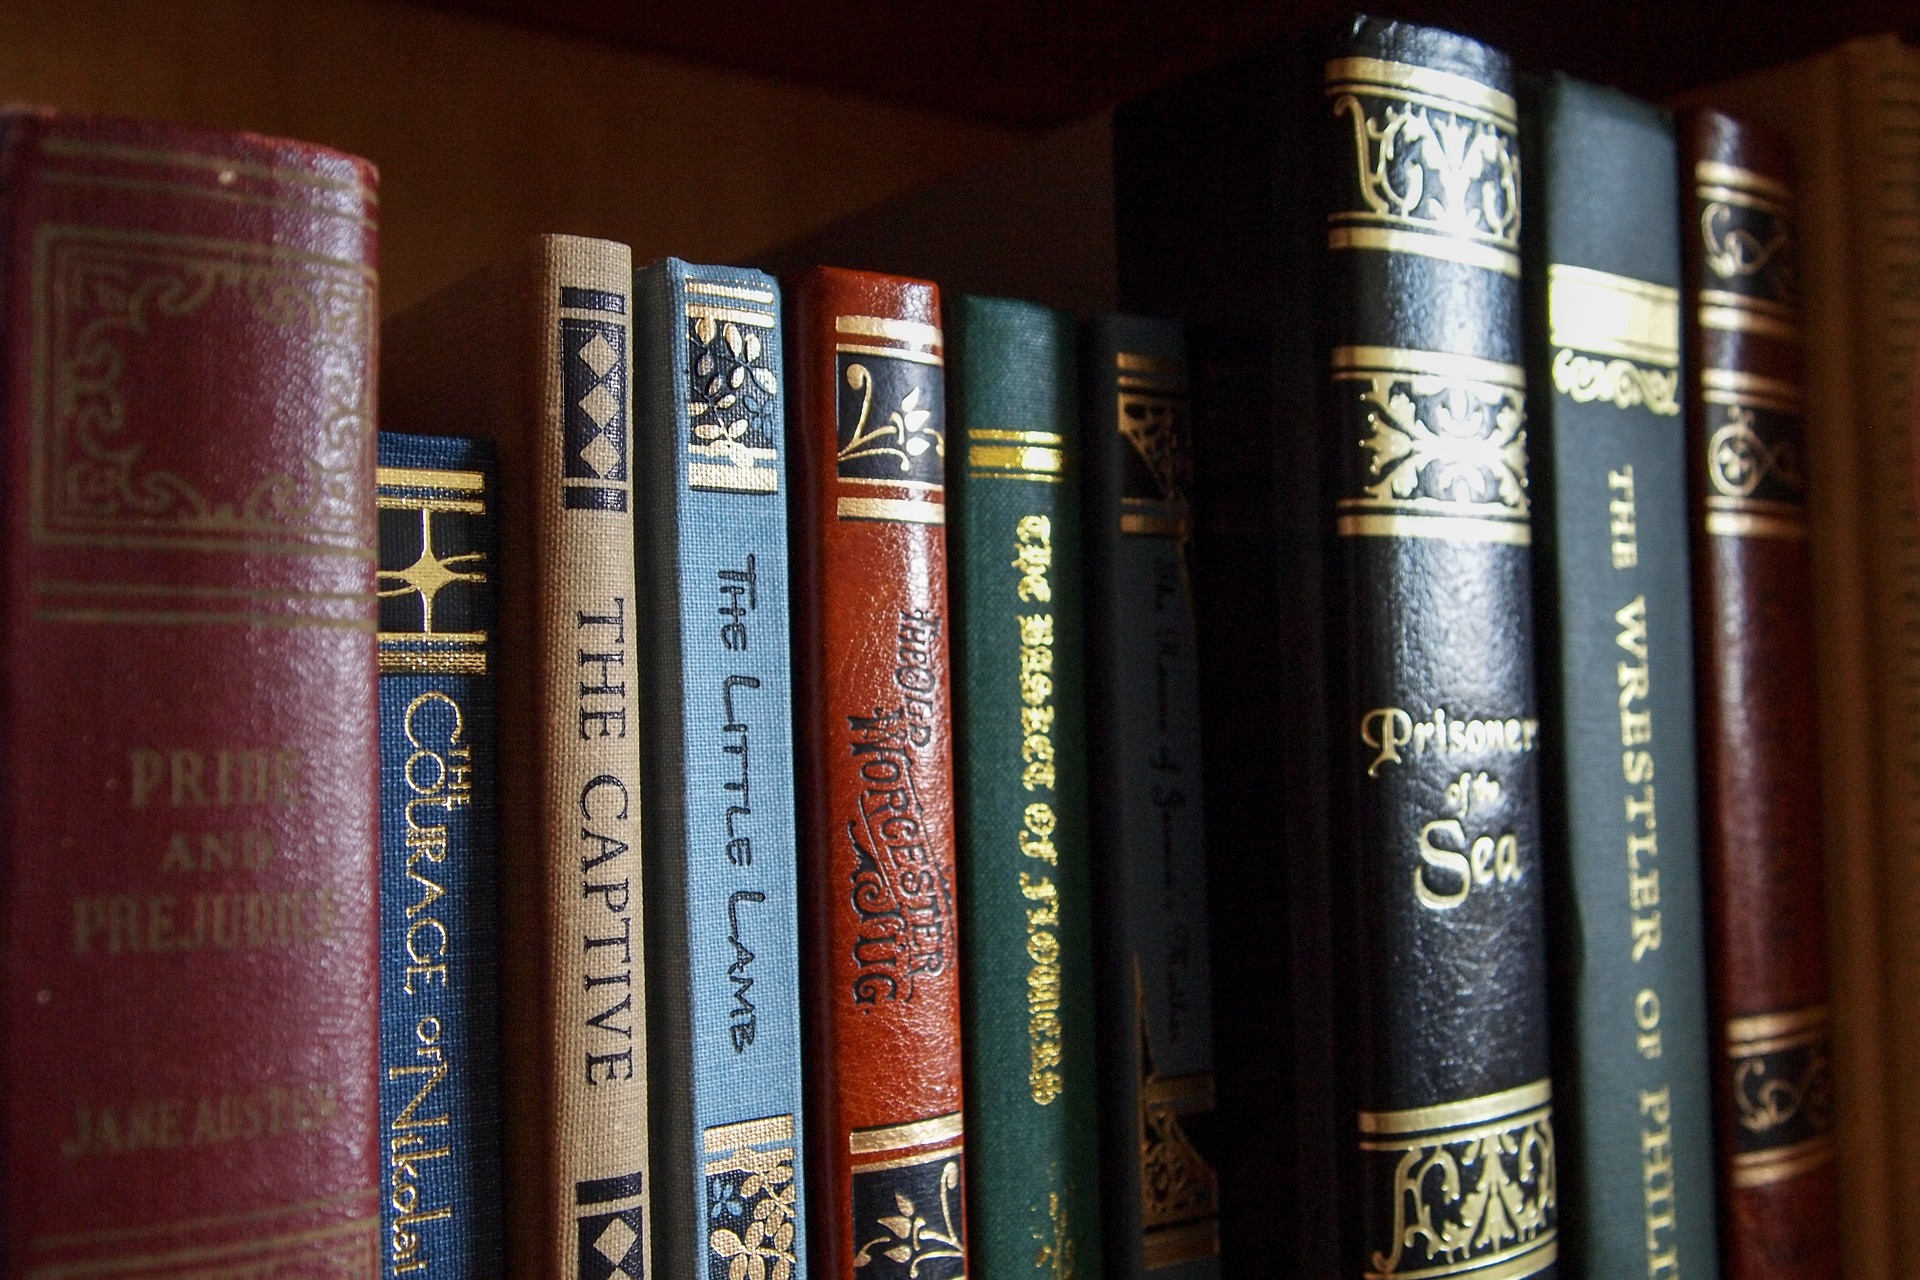 Using great literature and other works for copywork in your homeschool